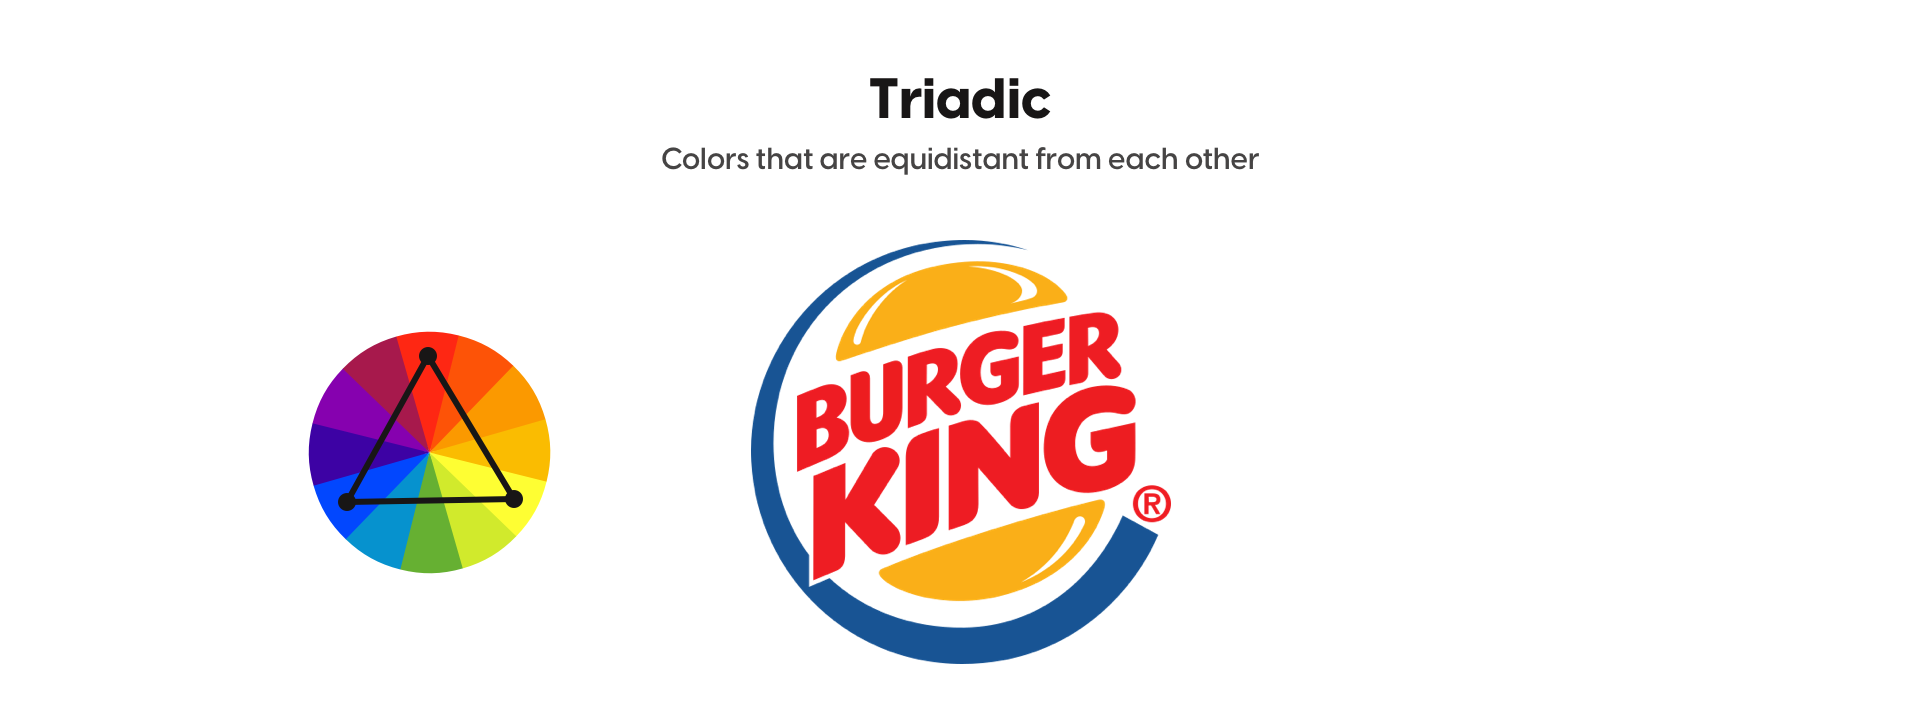 Example of triadic colors with Burger King